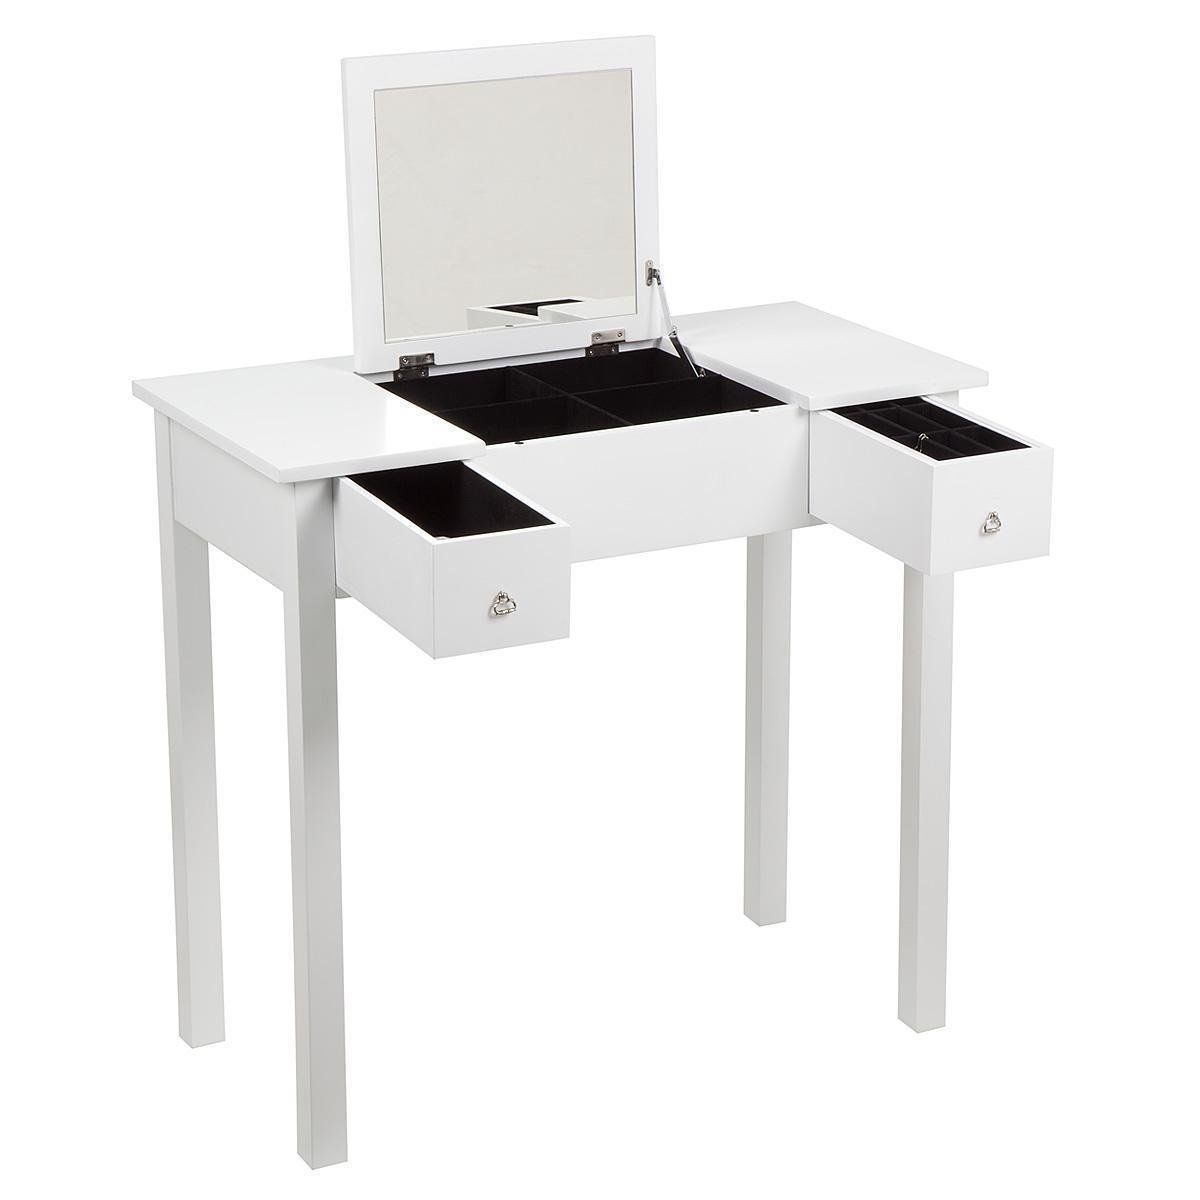 Mirrored Bedroom Furniture Uk Hartleys Bedroom Dressing Table With Folding Vanity Mirror Amazon